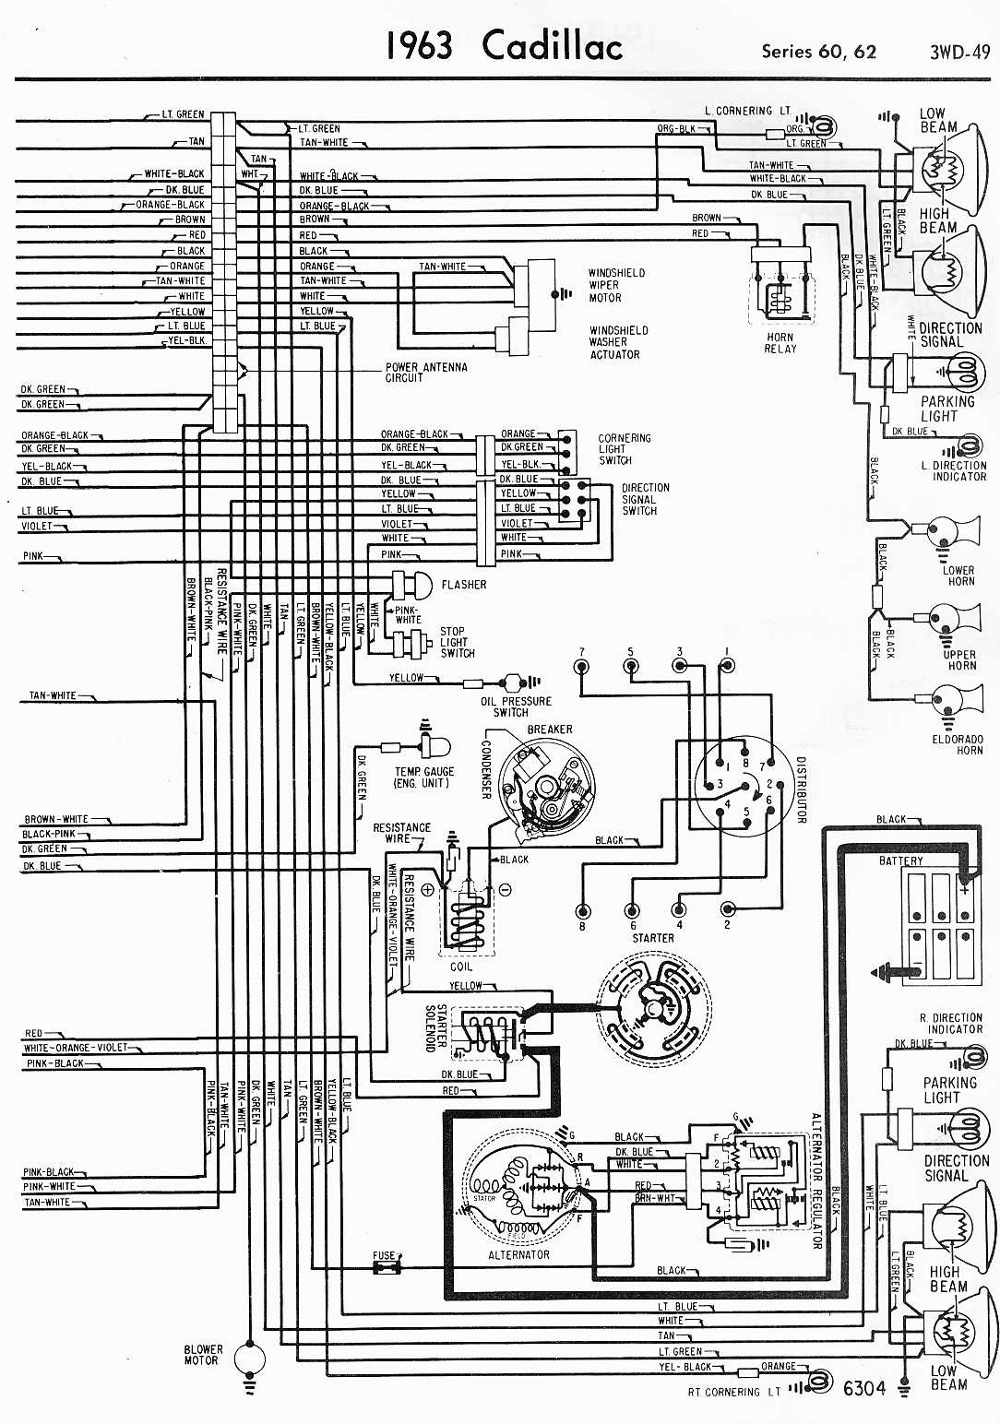 1995 cadillac parts diagram u2022 wiring diagram for free cadillac seville sls diagram of transmission mounts [ 1000 x 1424 Pixel ]